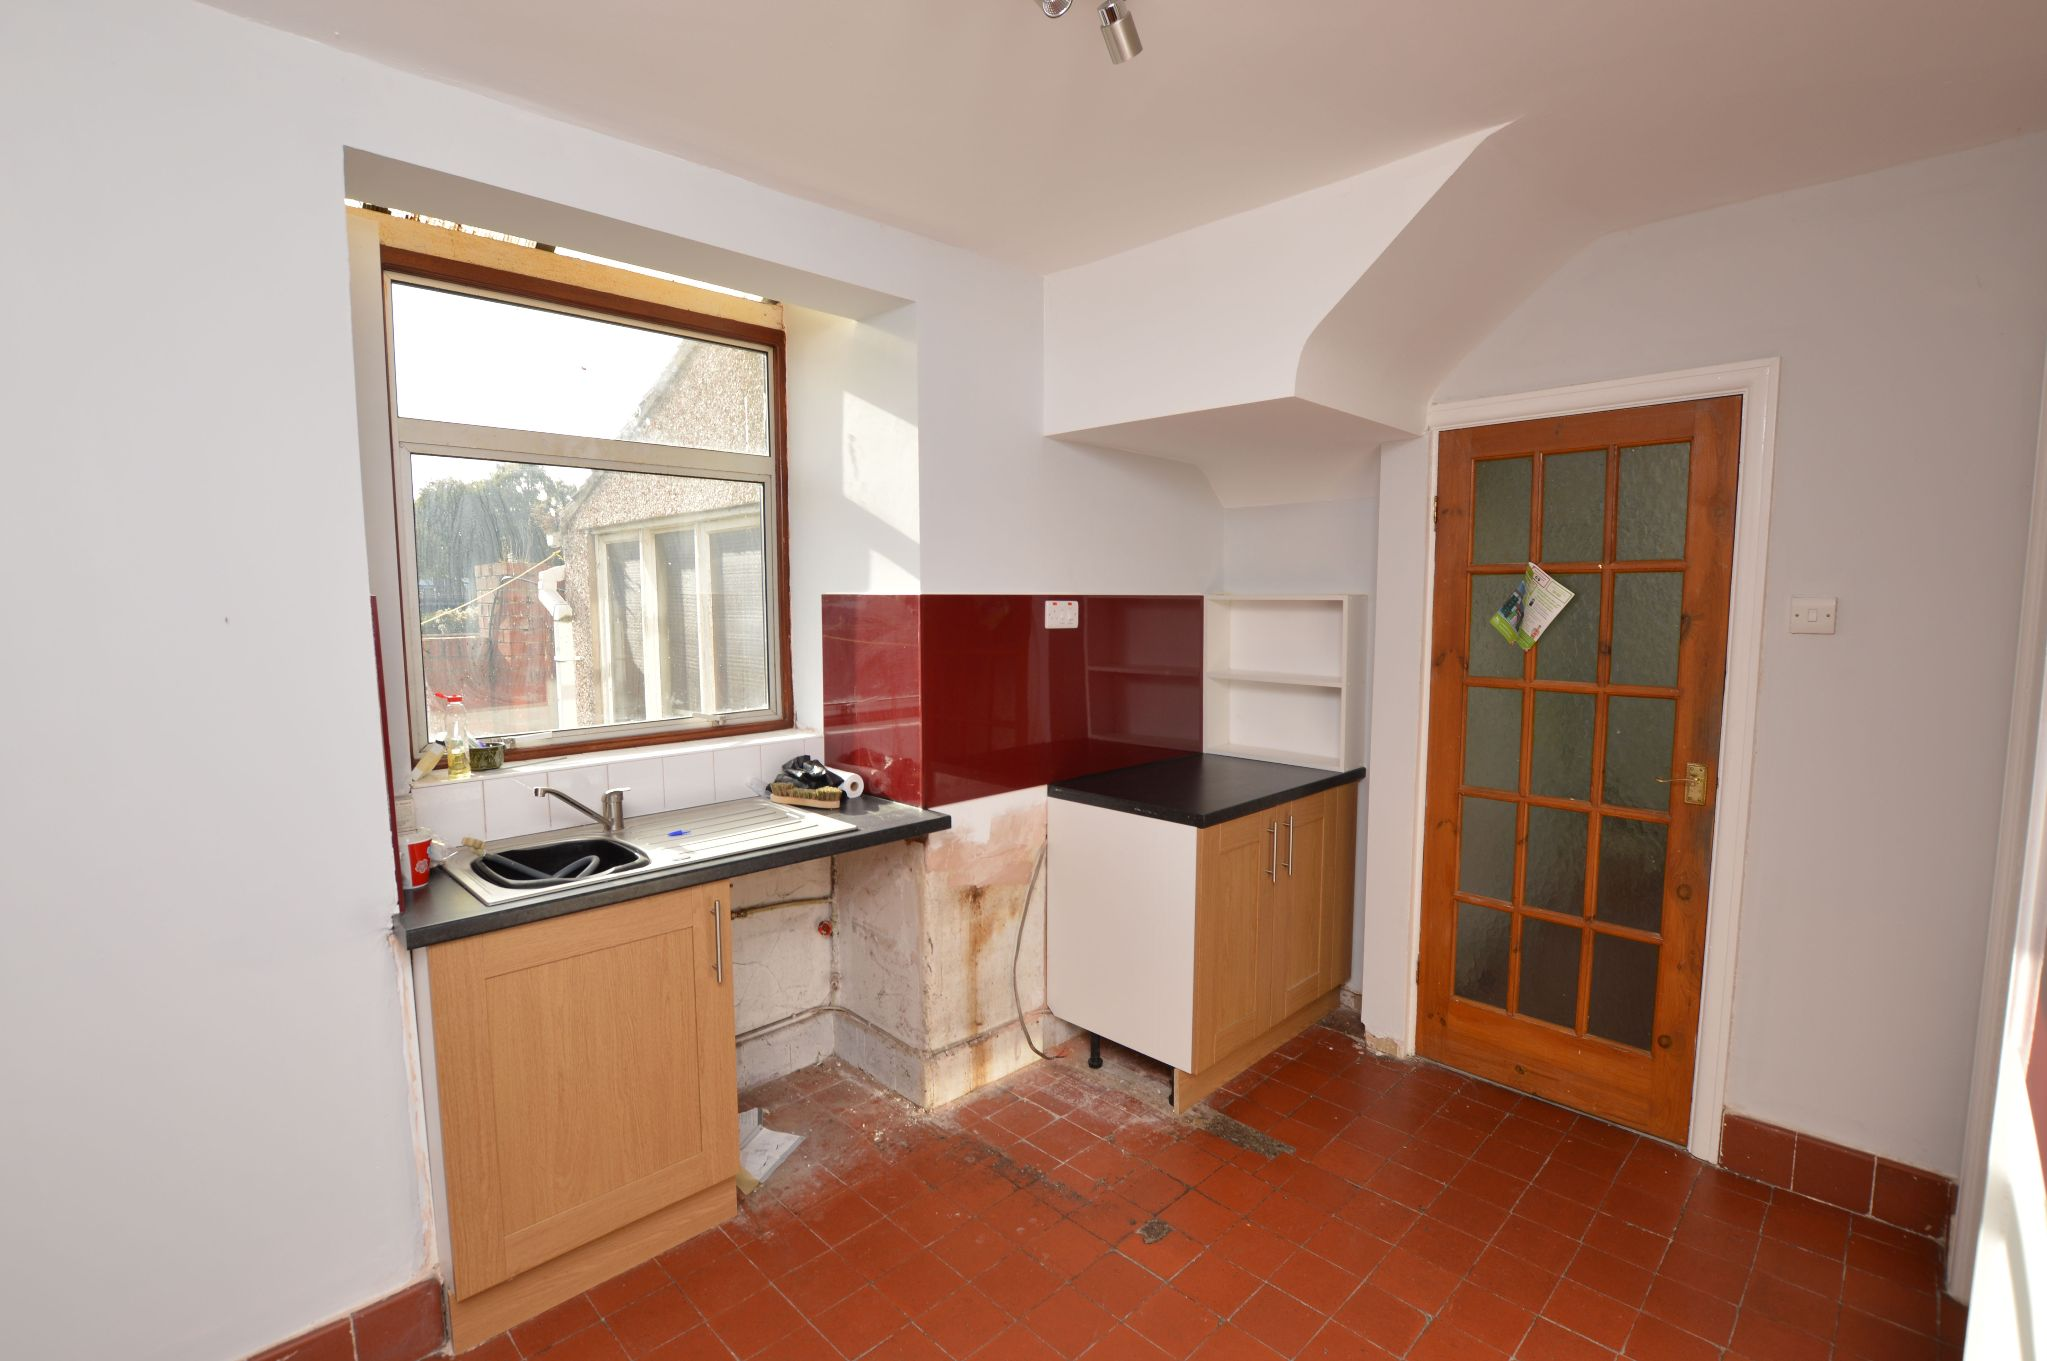 3 bedroom semi-detached house For Sale in Abergele - Kitchen View 2